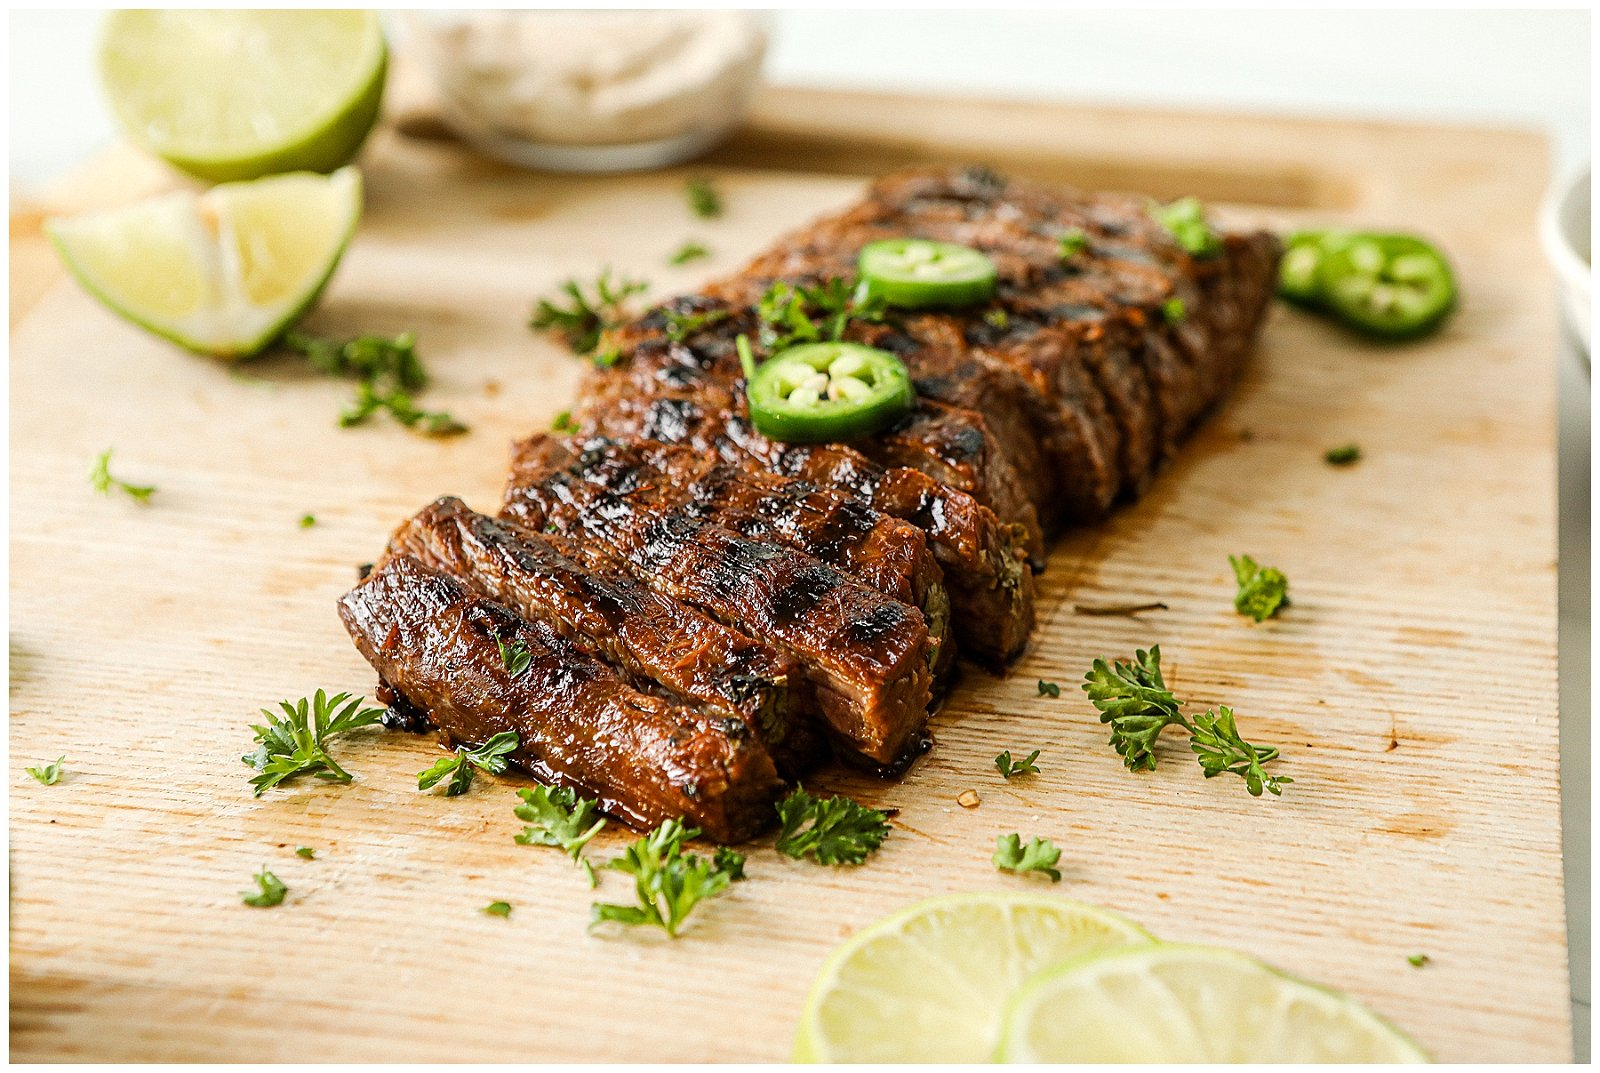 Flank steak on the grill